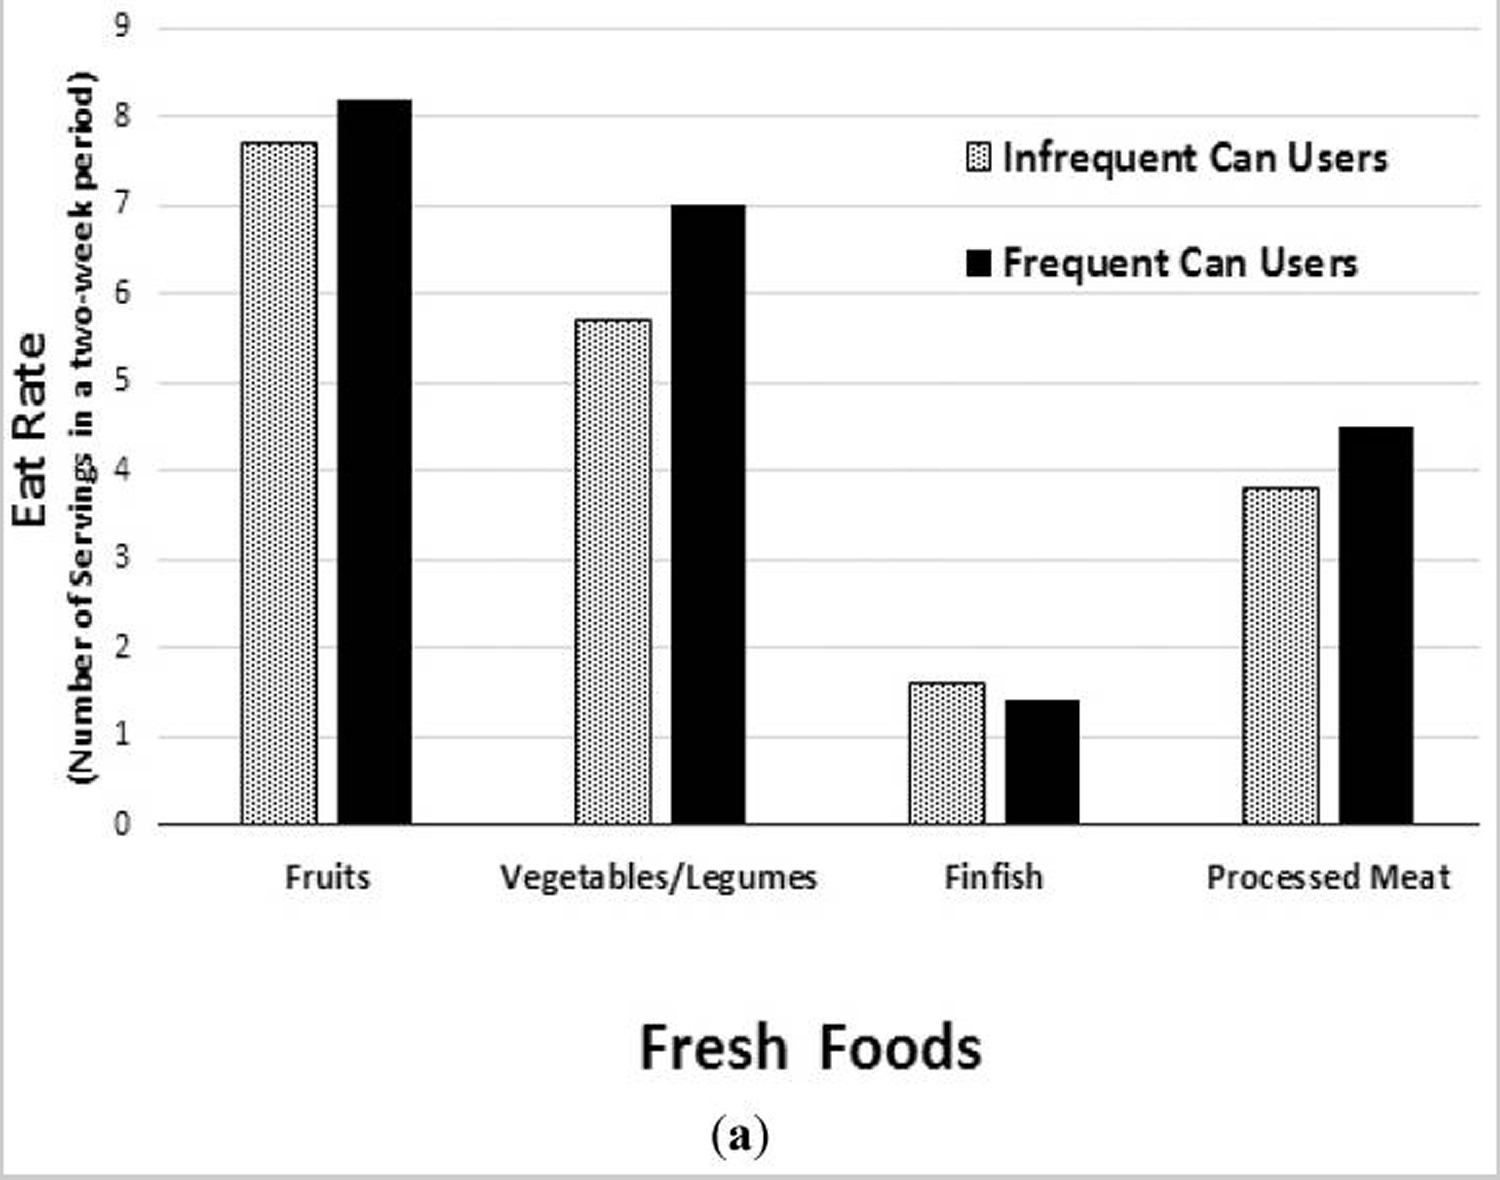 fresh foods consumption between canned food and non-canned food users